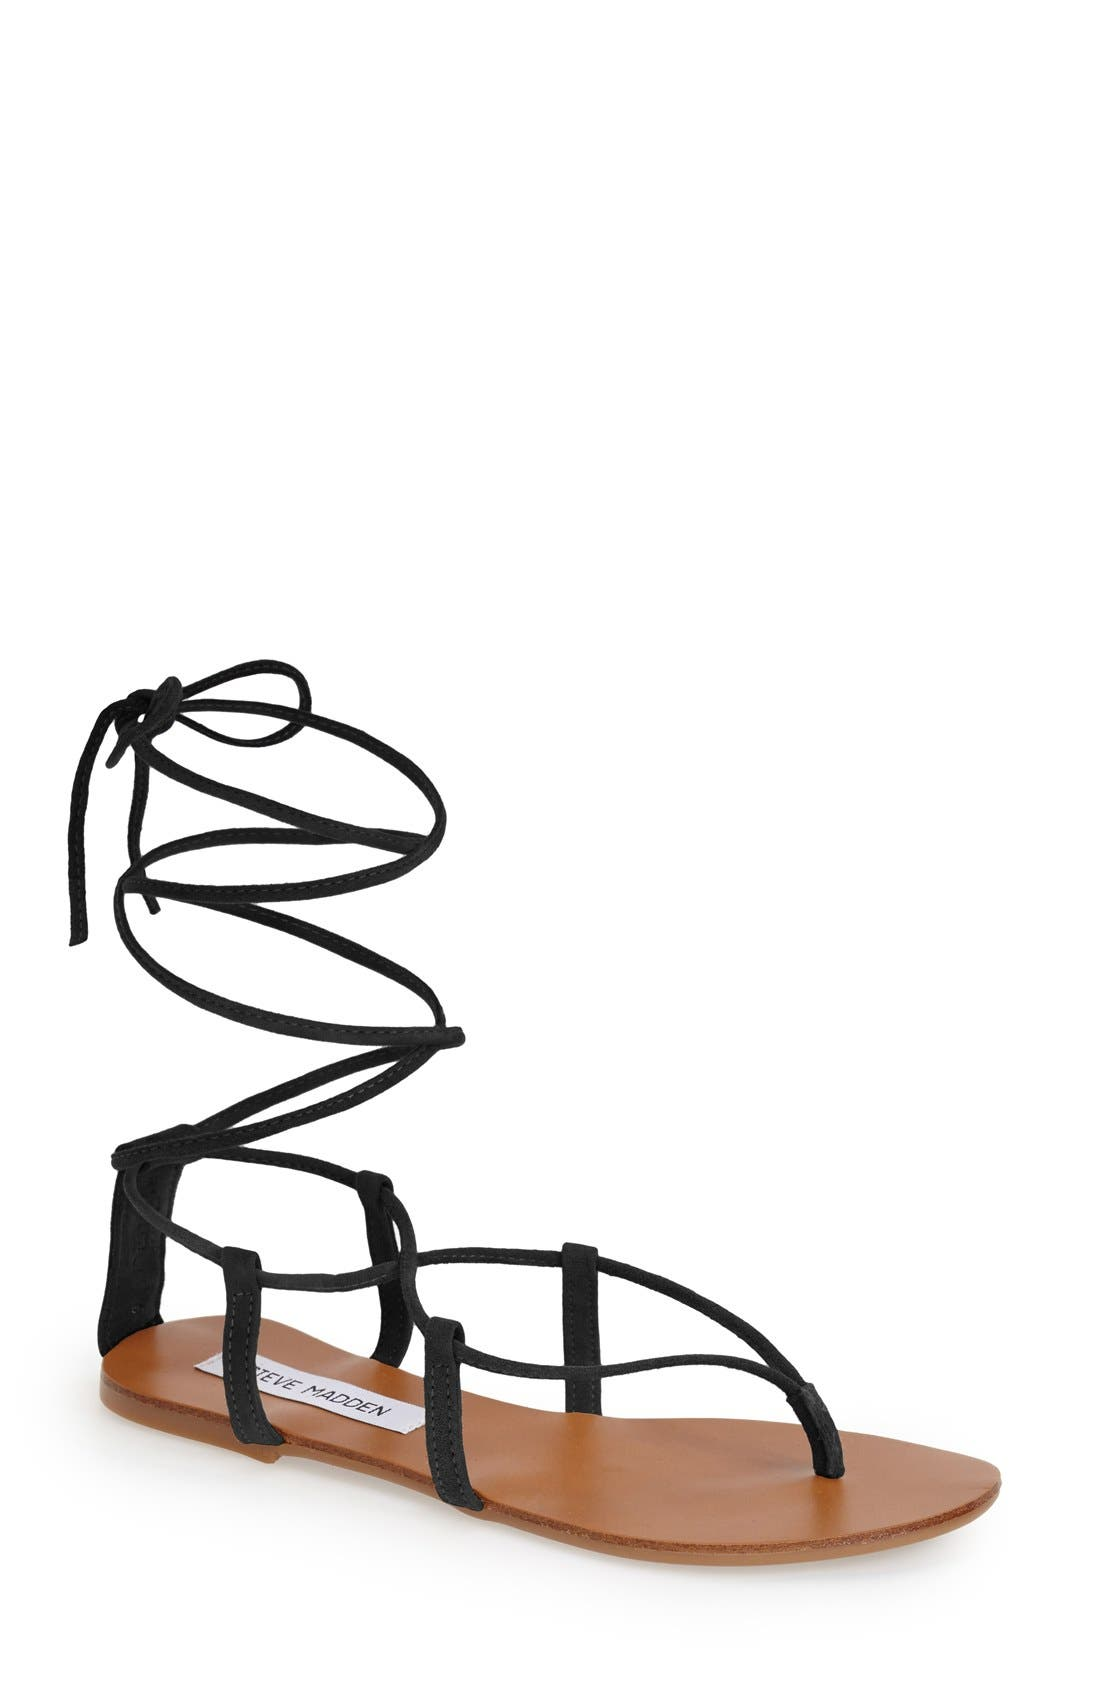 'Werkit' Gladiator Sandal,                             Main thumbnail 1, color,                             001